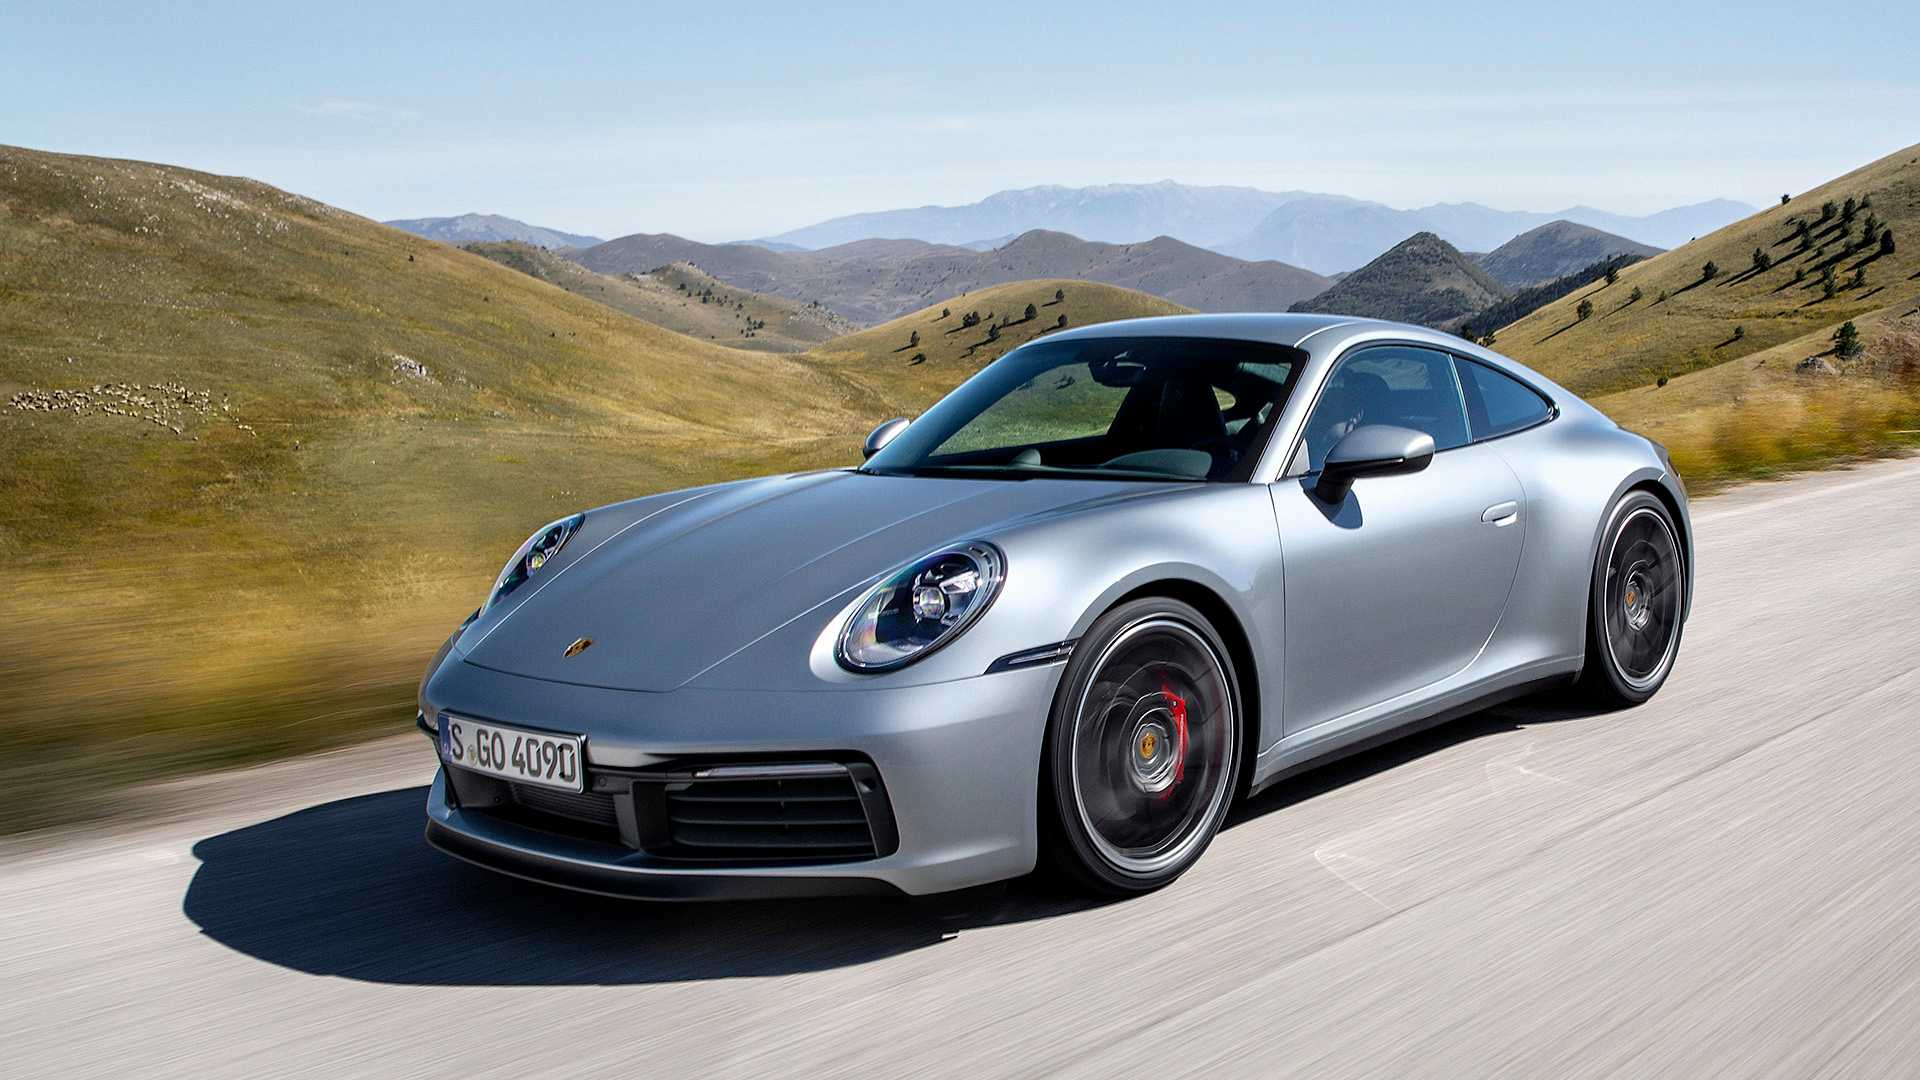 new porsche 911 plays it safe with wet mode autodevot. Black Bedroom Furniture Sets. Home Design Ideas